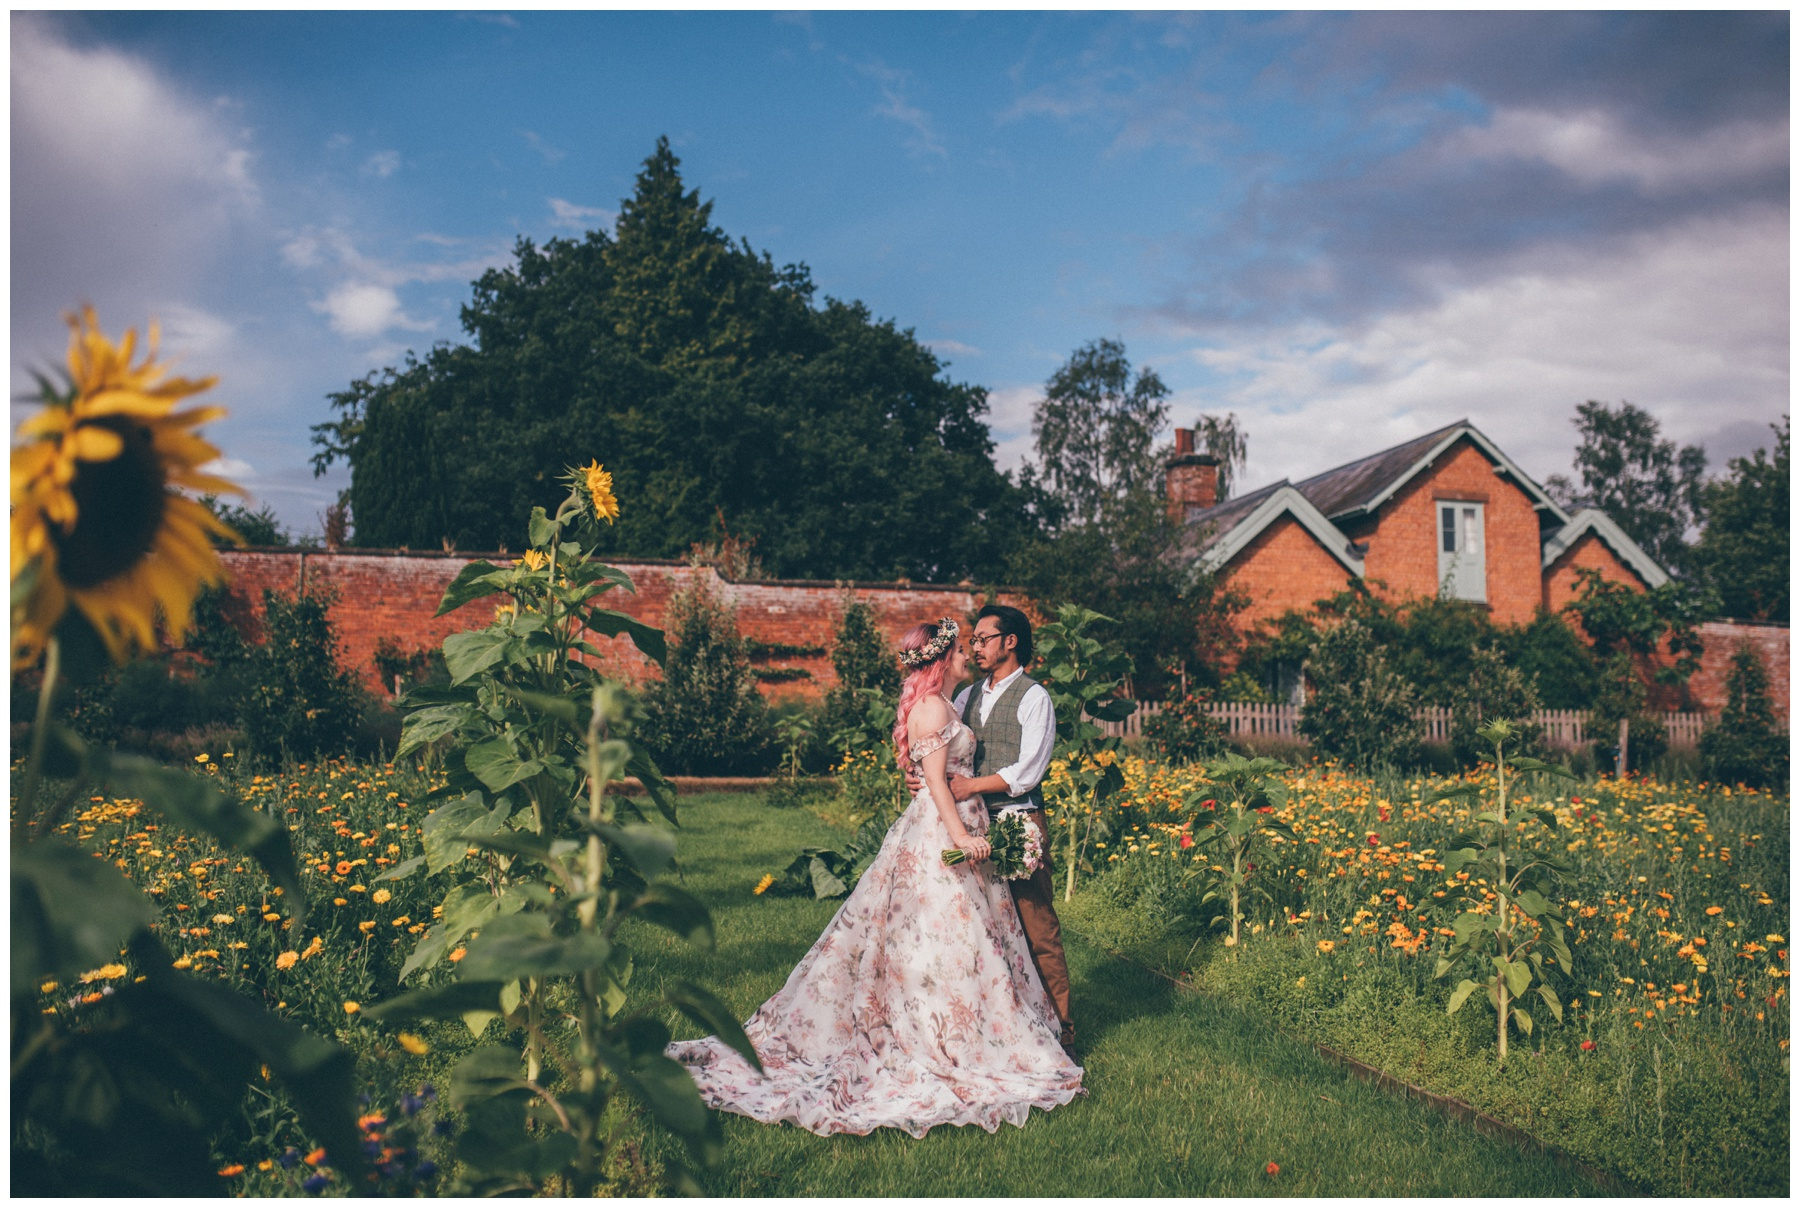 Bride in stunning floral Berketex wedding gown with her husband at Sugnall Walled Gardens in Staffordshire.